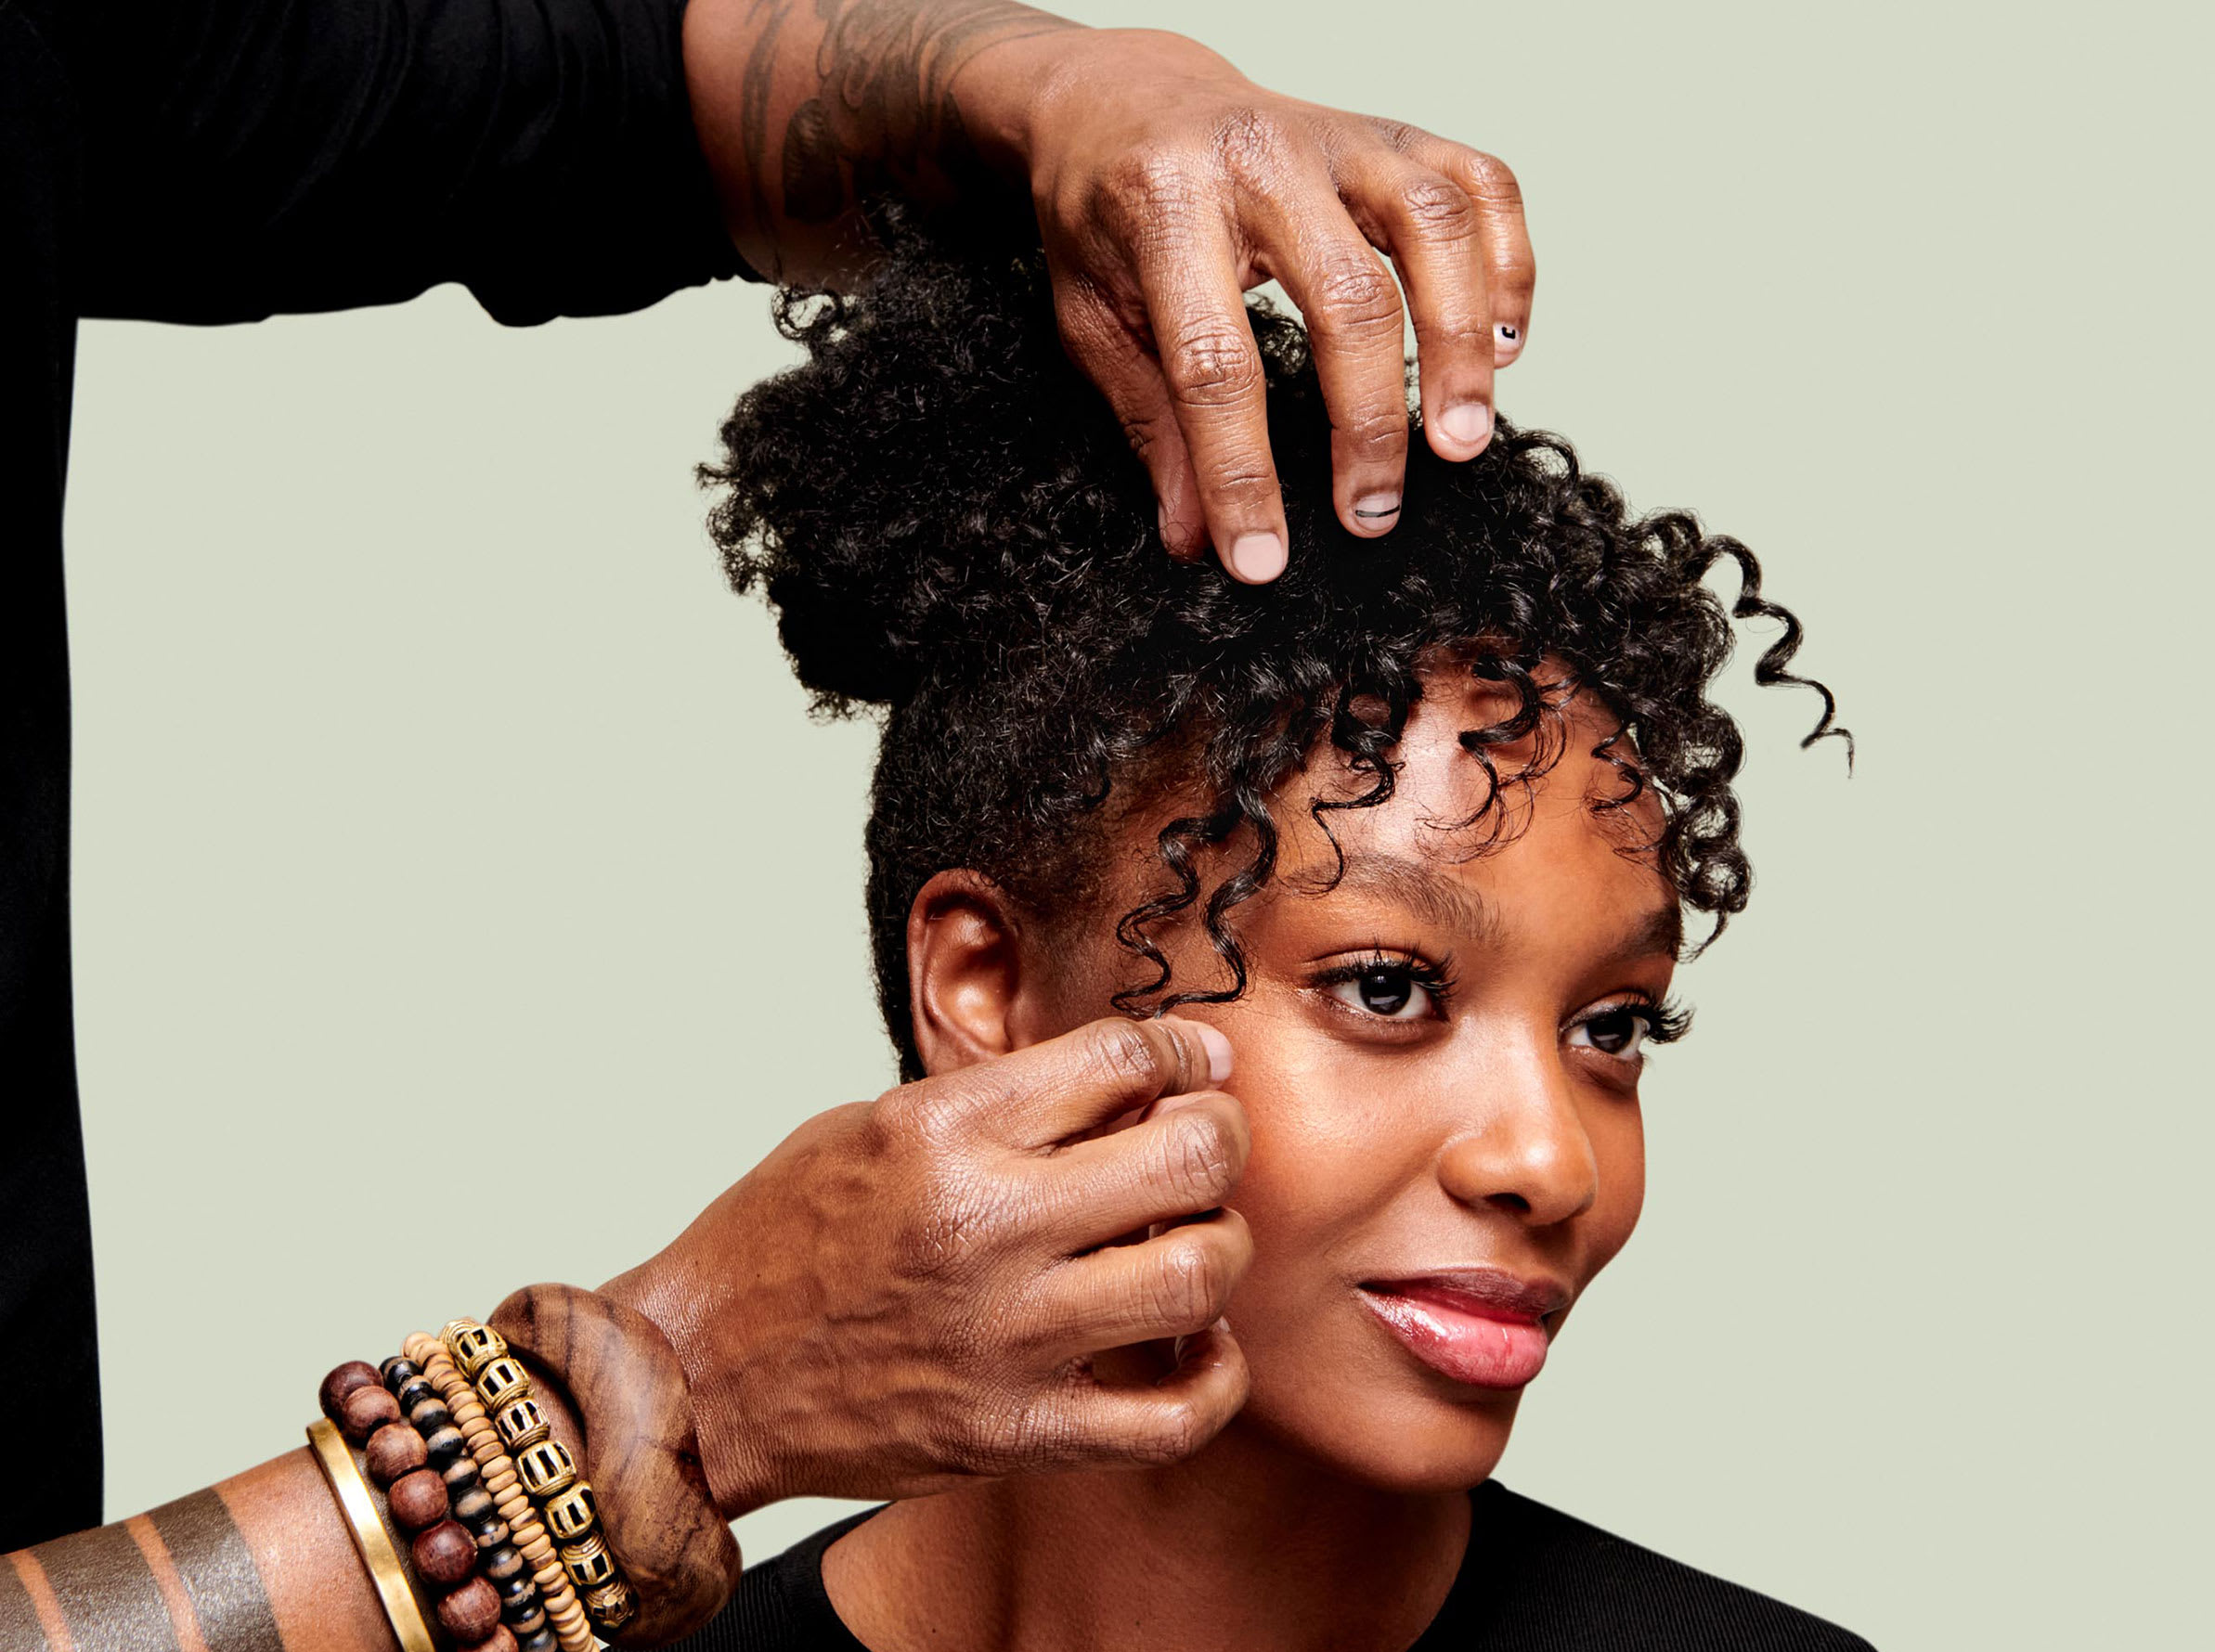 stylist touching curly hair of client